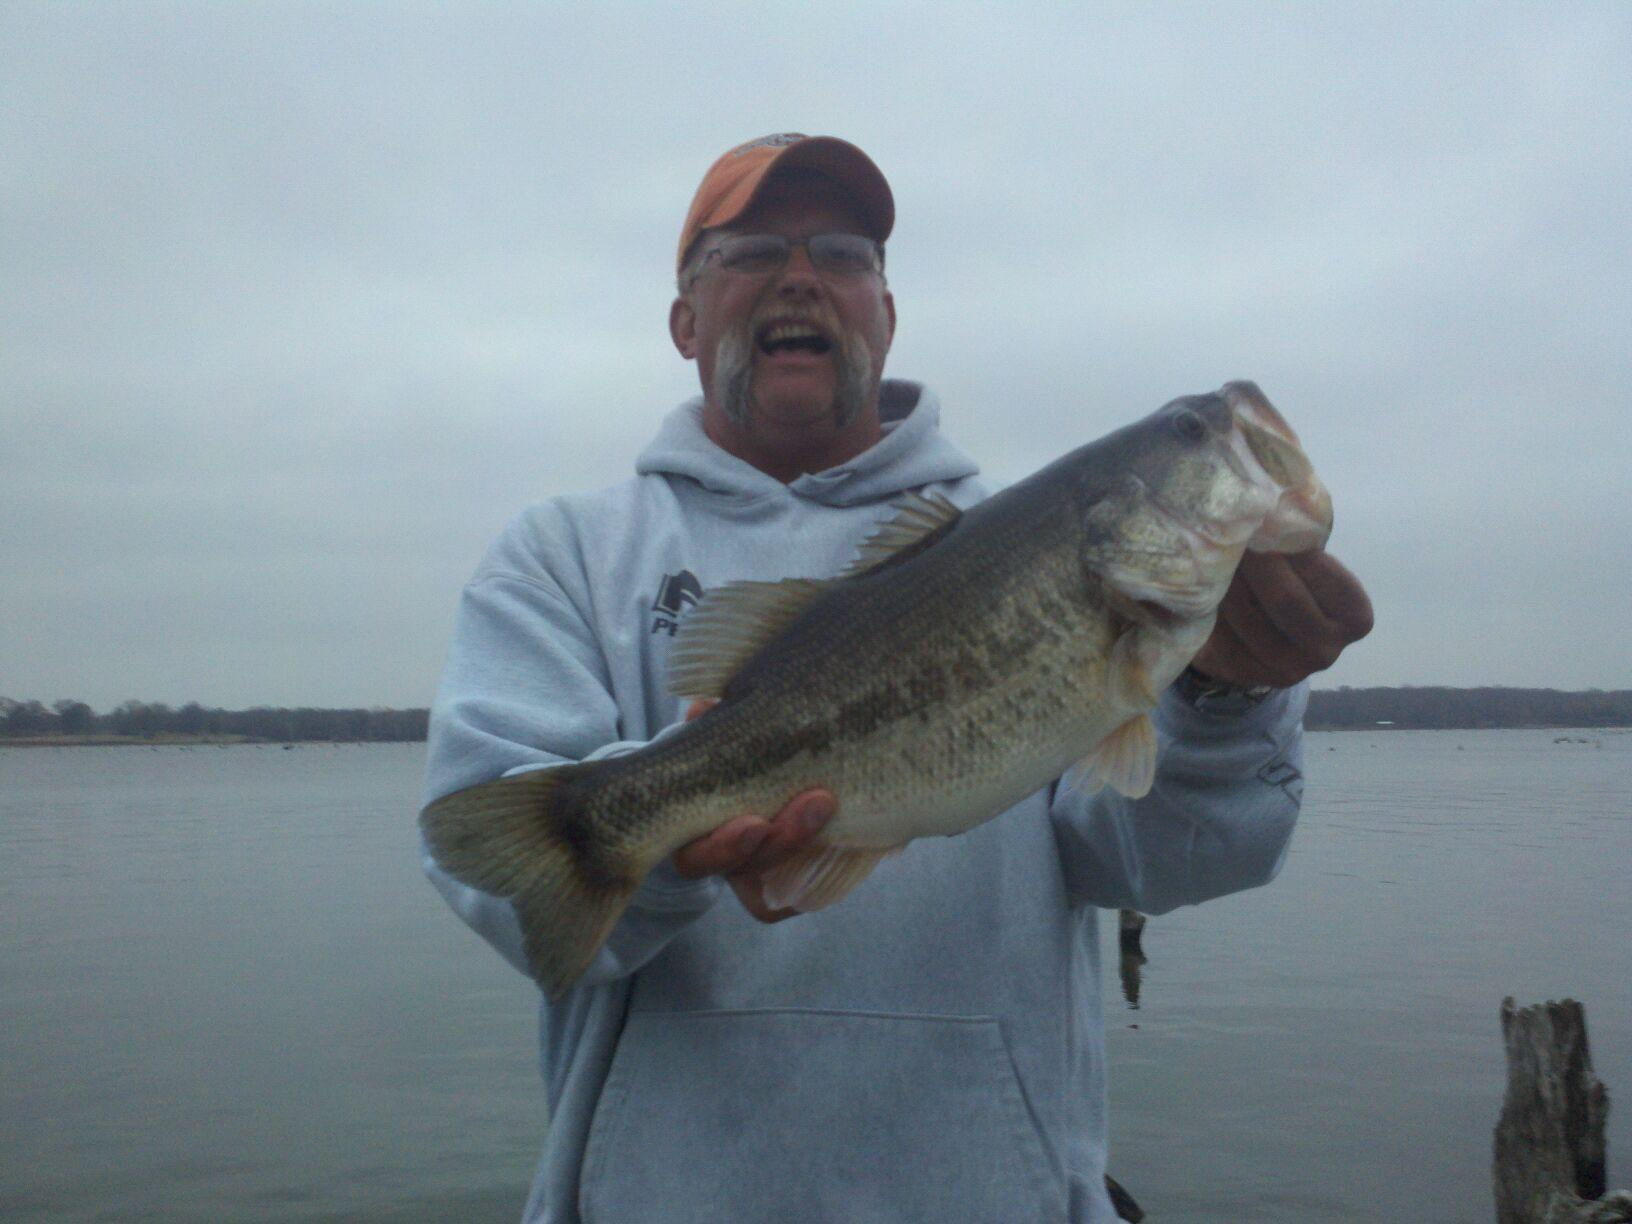 Curt Radi Hutchinson Ks  One of many.  9 to be exact. all over 7lbs with my buddy catching a